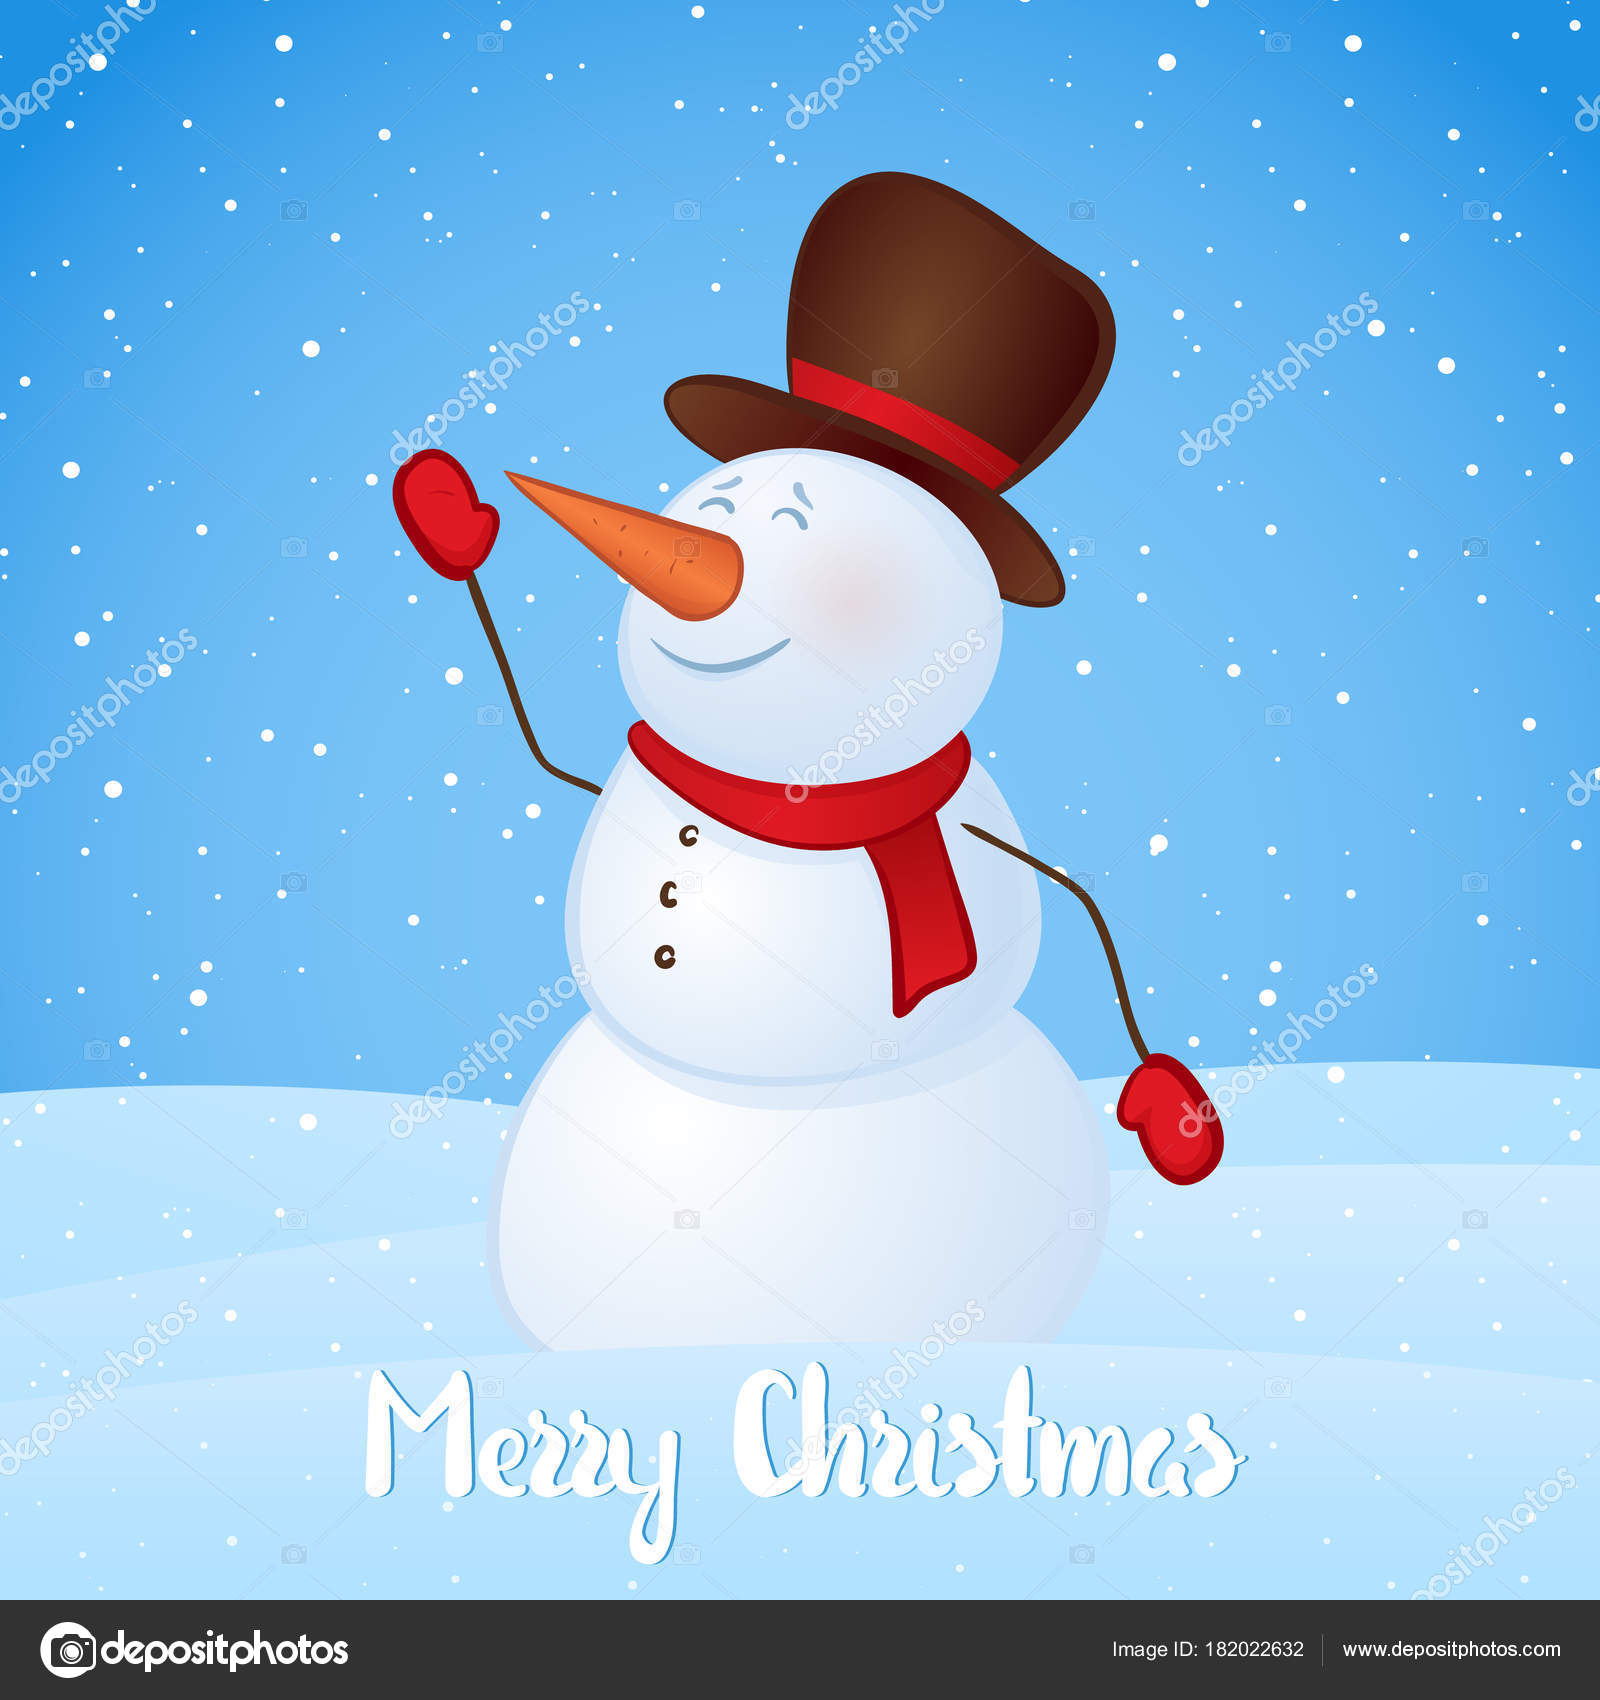 Vector Illustration Winter Greeting Card With Snowman On Snowy